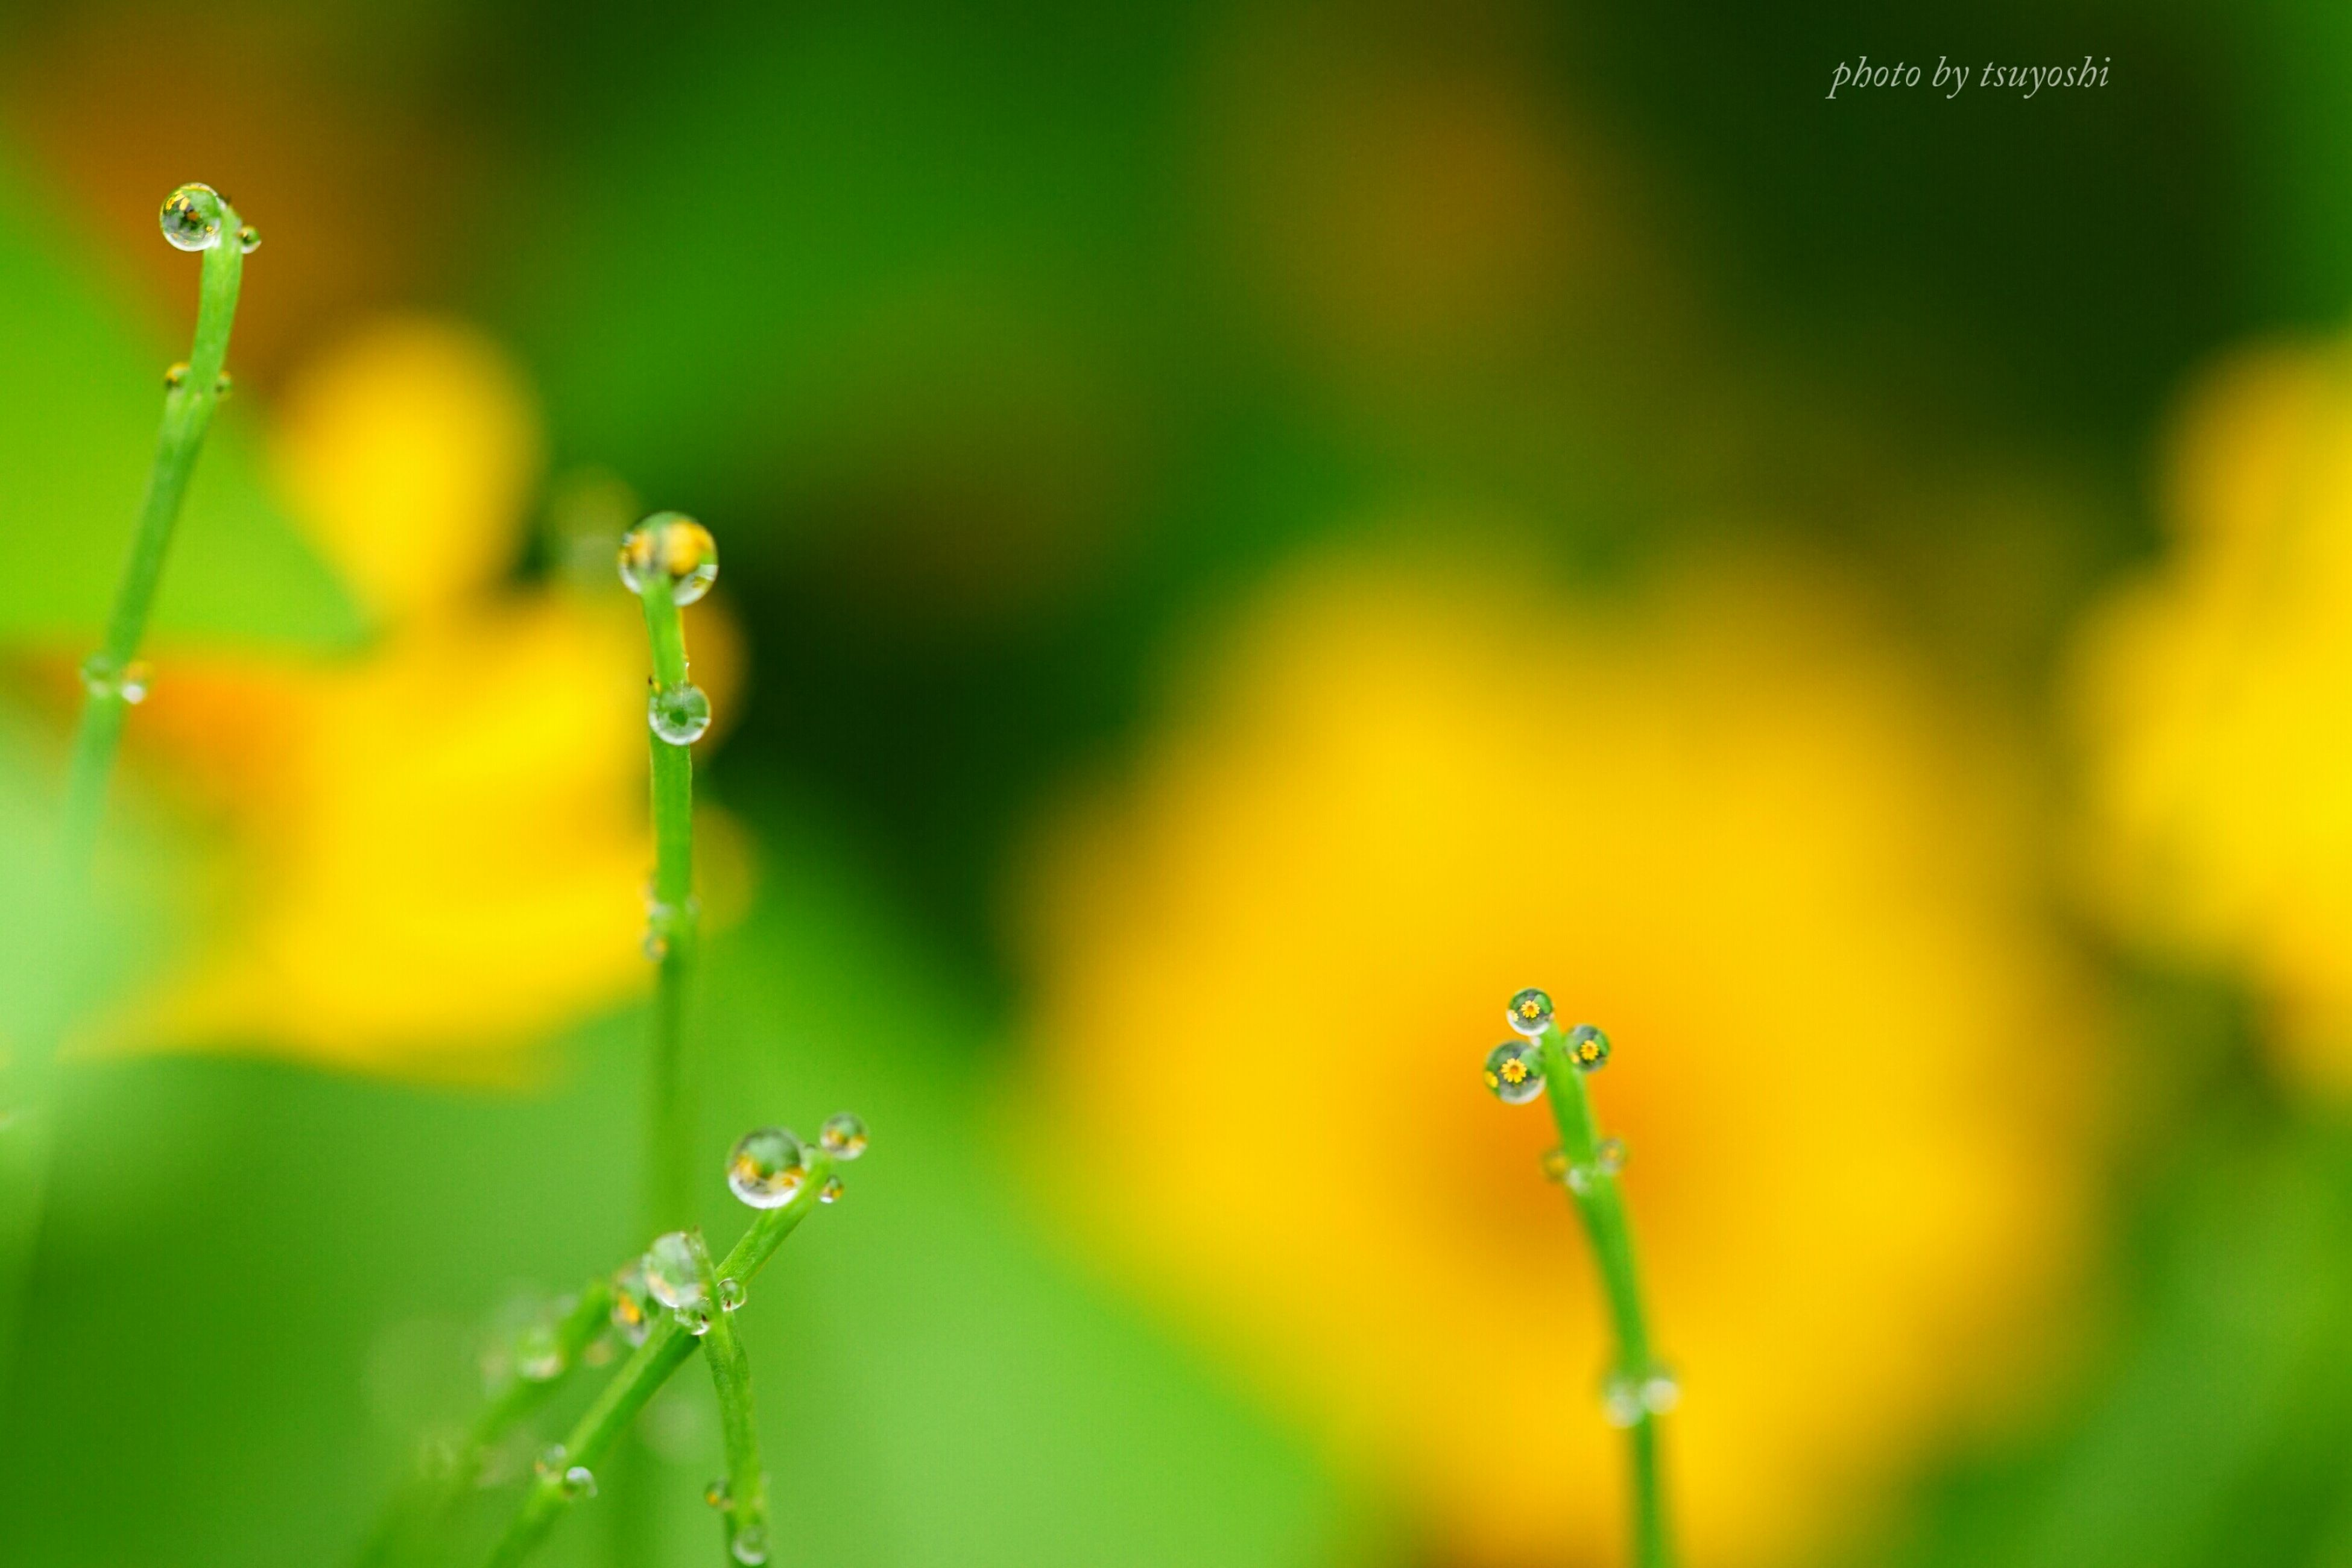 close-up, focus on foreground, plant, growth, fragility, selective focus, nature, drop, beauty in nature, freshness, stem, flower, bud, water, green color, day, outdoors, wet, dew, no people